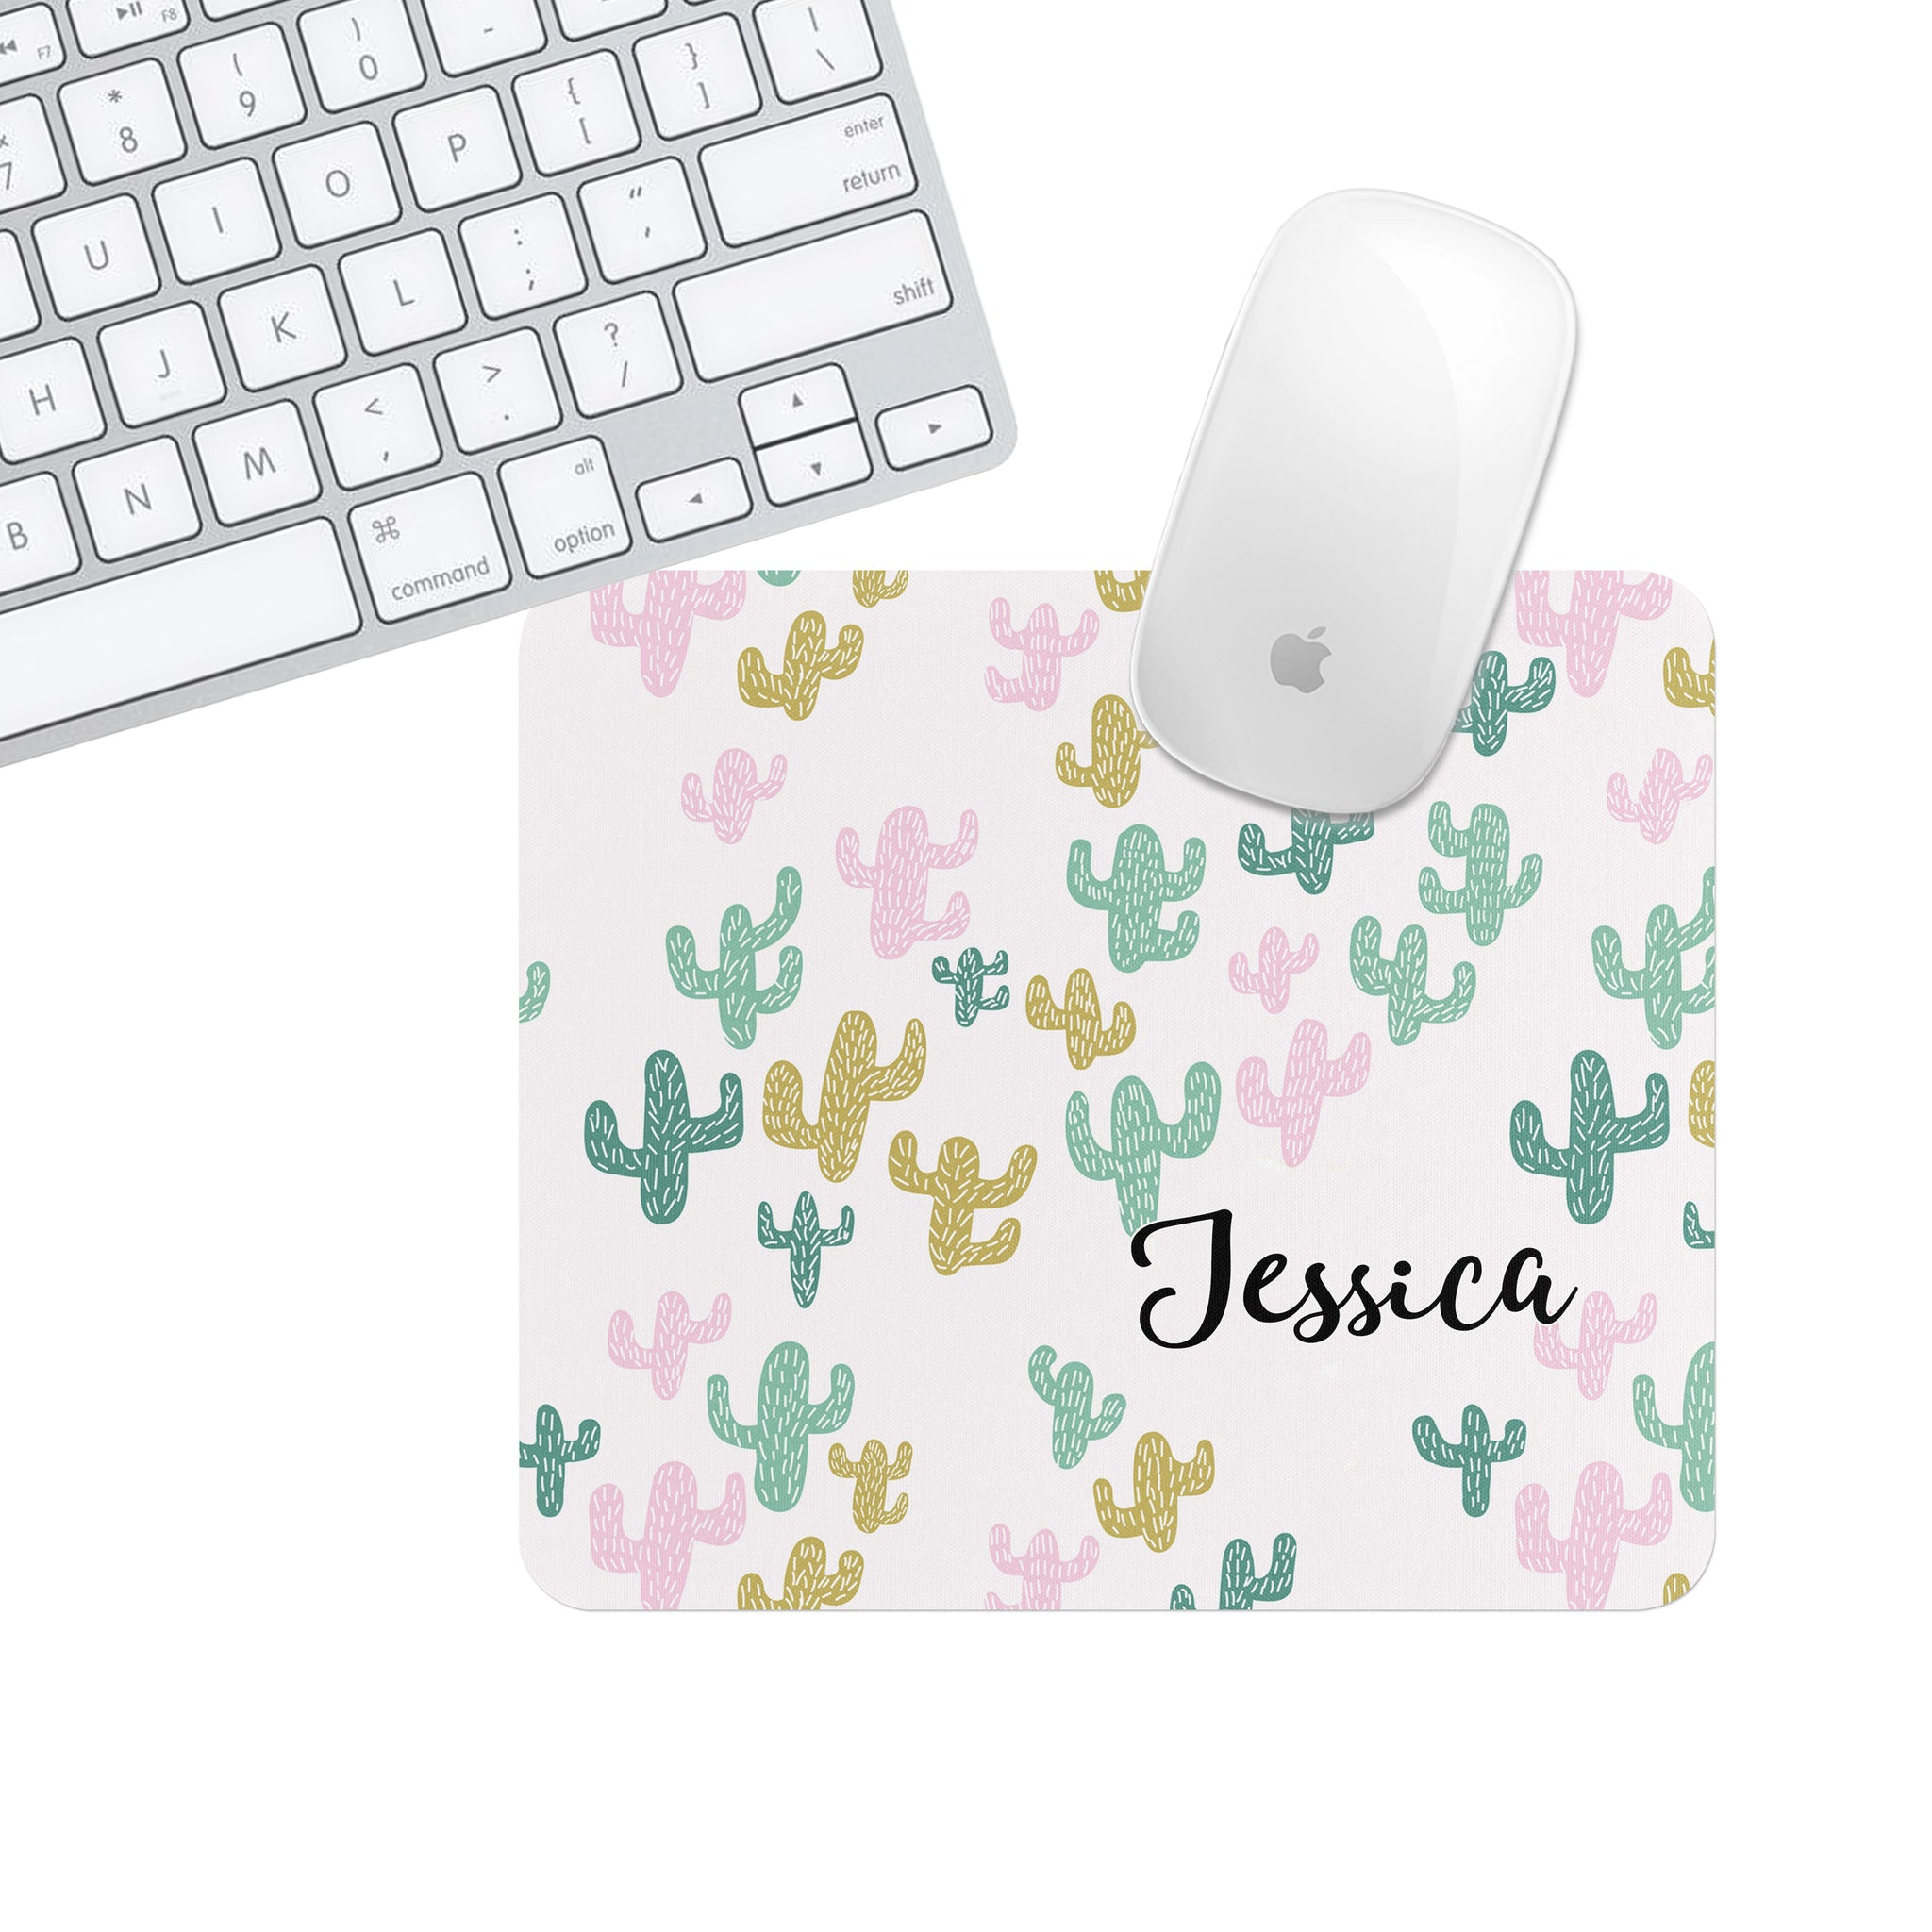 Custom or Plain Cactus Jenna Square Mouse Pad - Second East